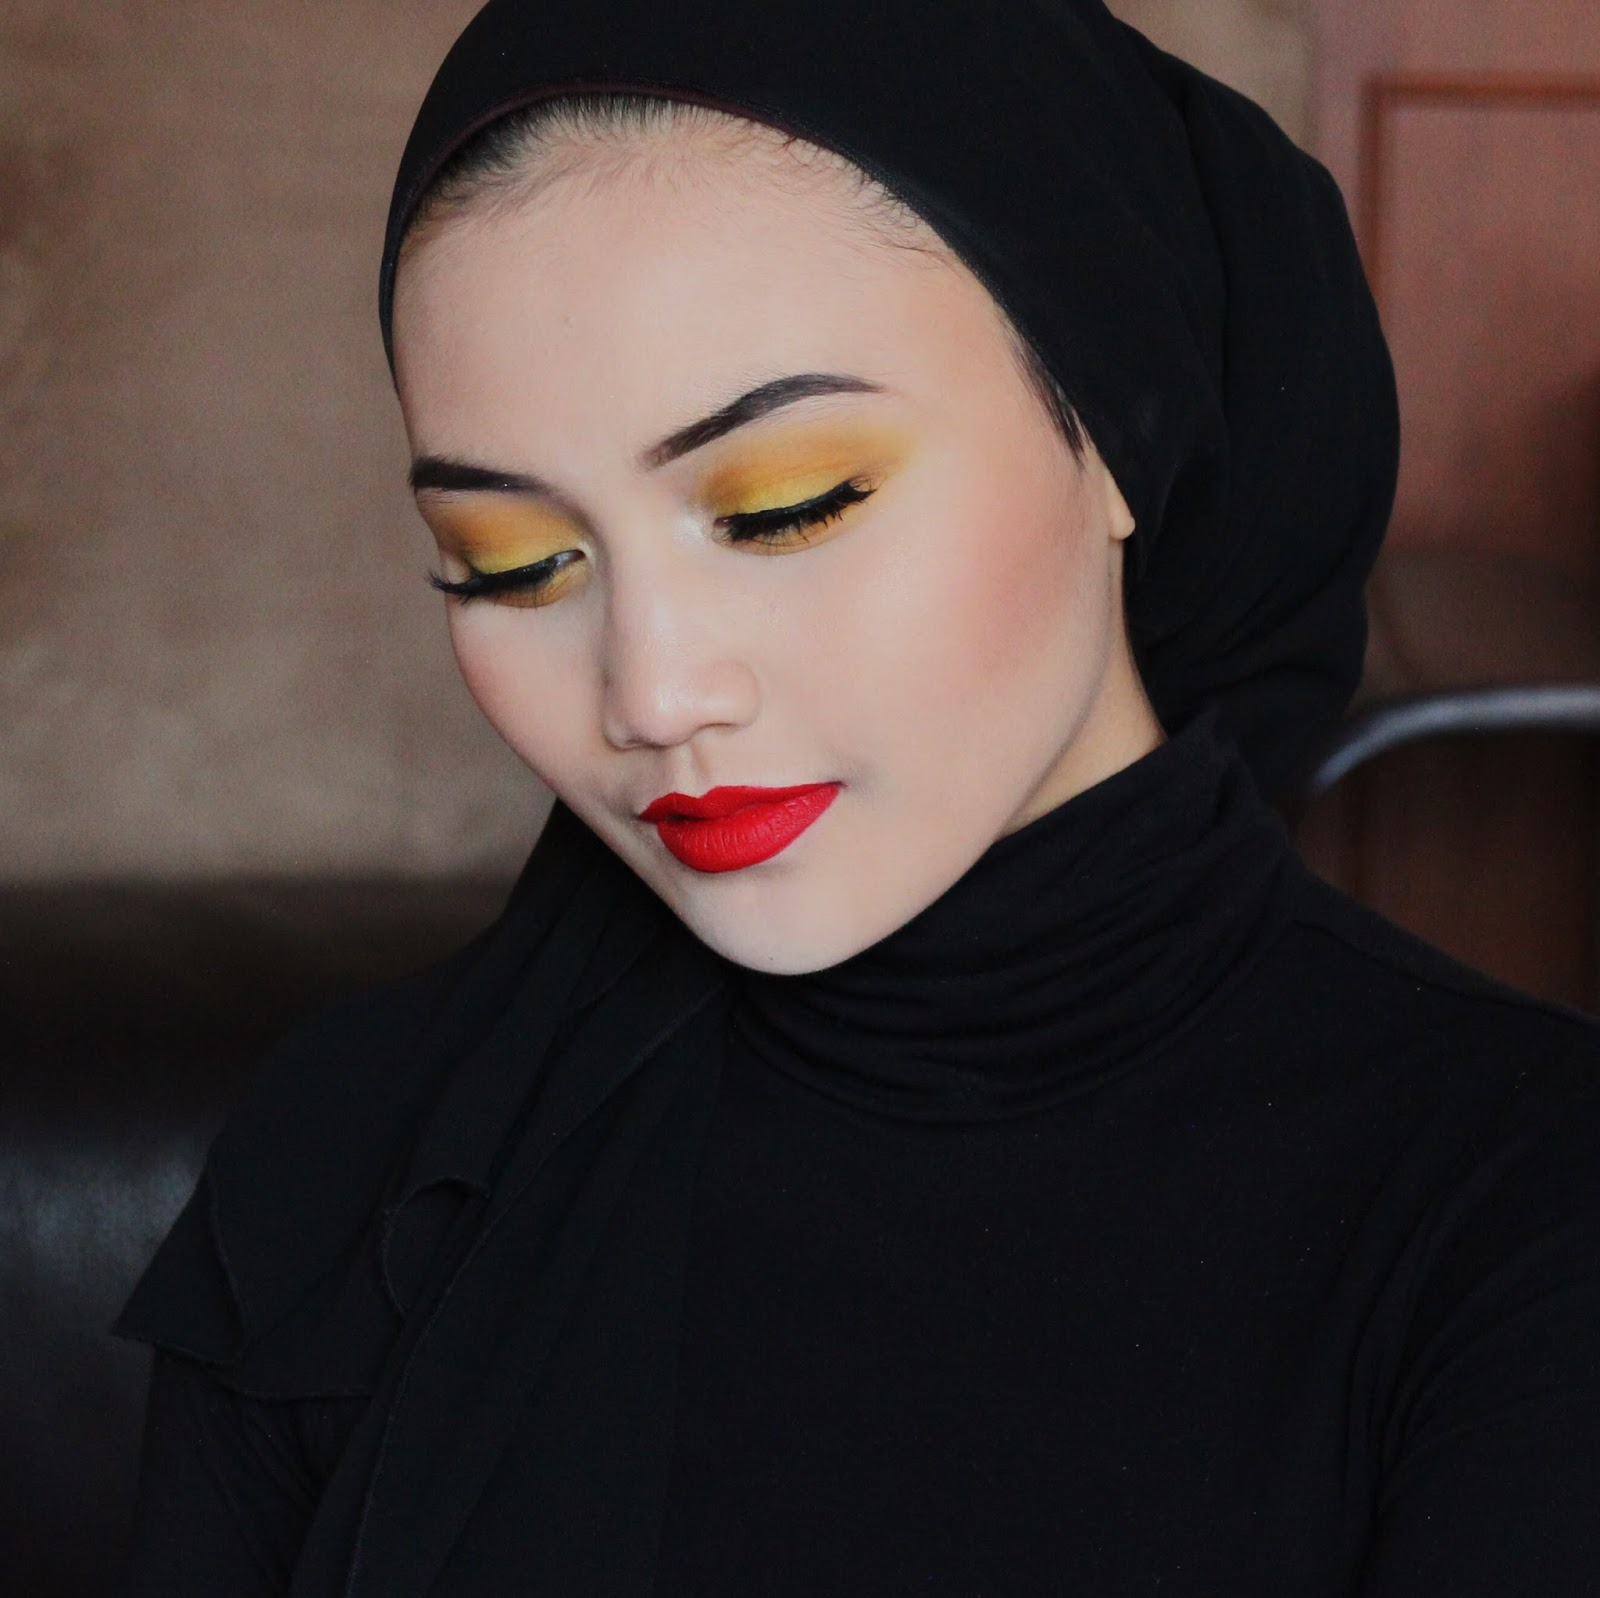 Punk Yellow Eyeshadow & Red Lip Makeup Tutorial by Brunei Blogger Bash Harry